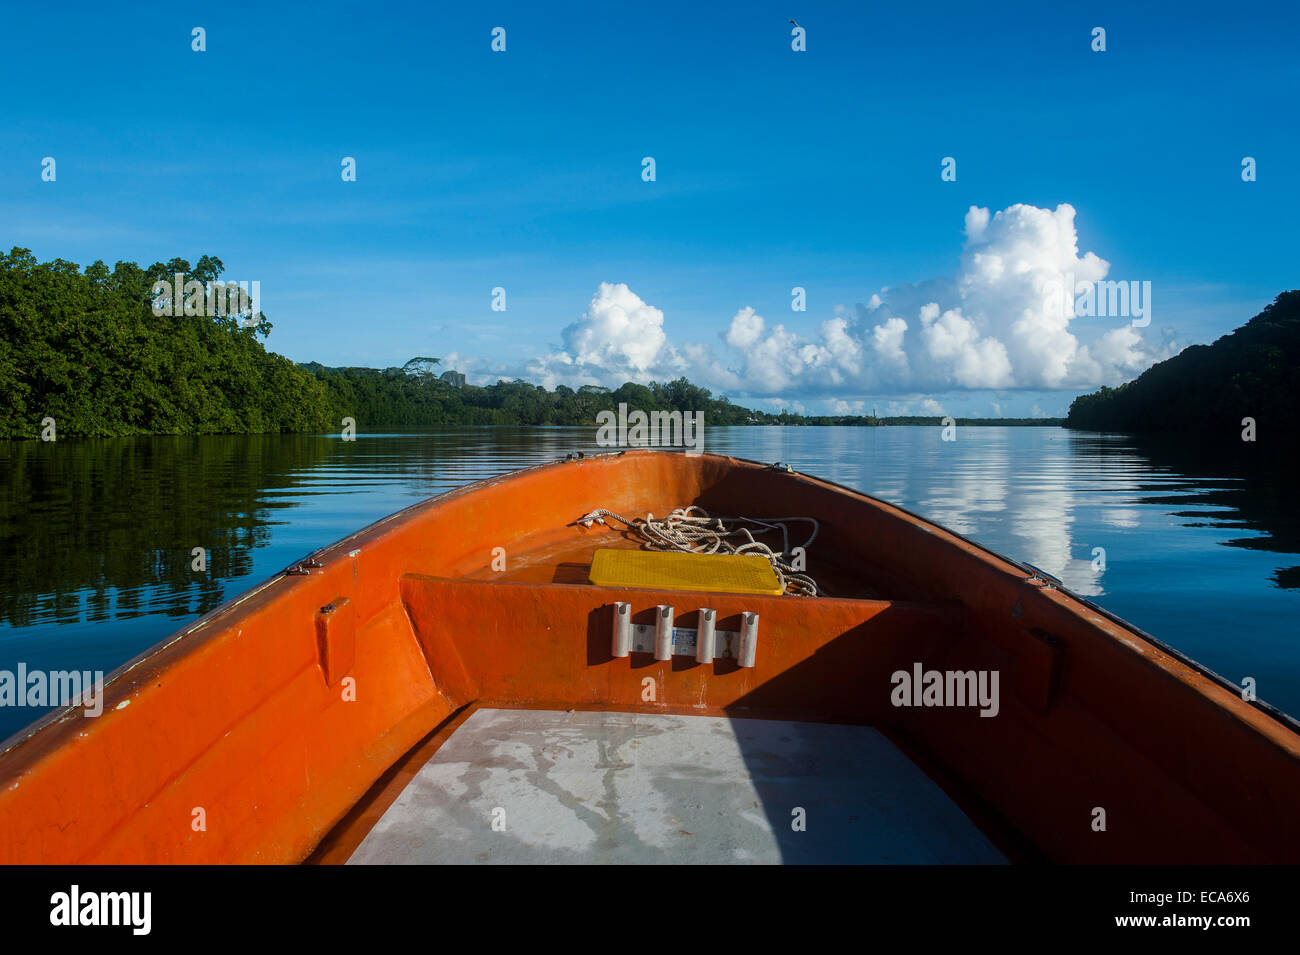 Boat cruising on a river, Pohnpei, Micronesia - Stock Image